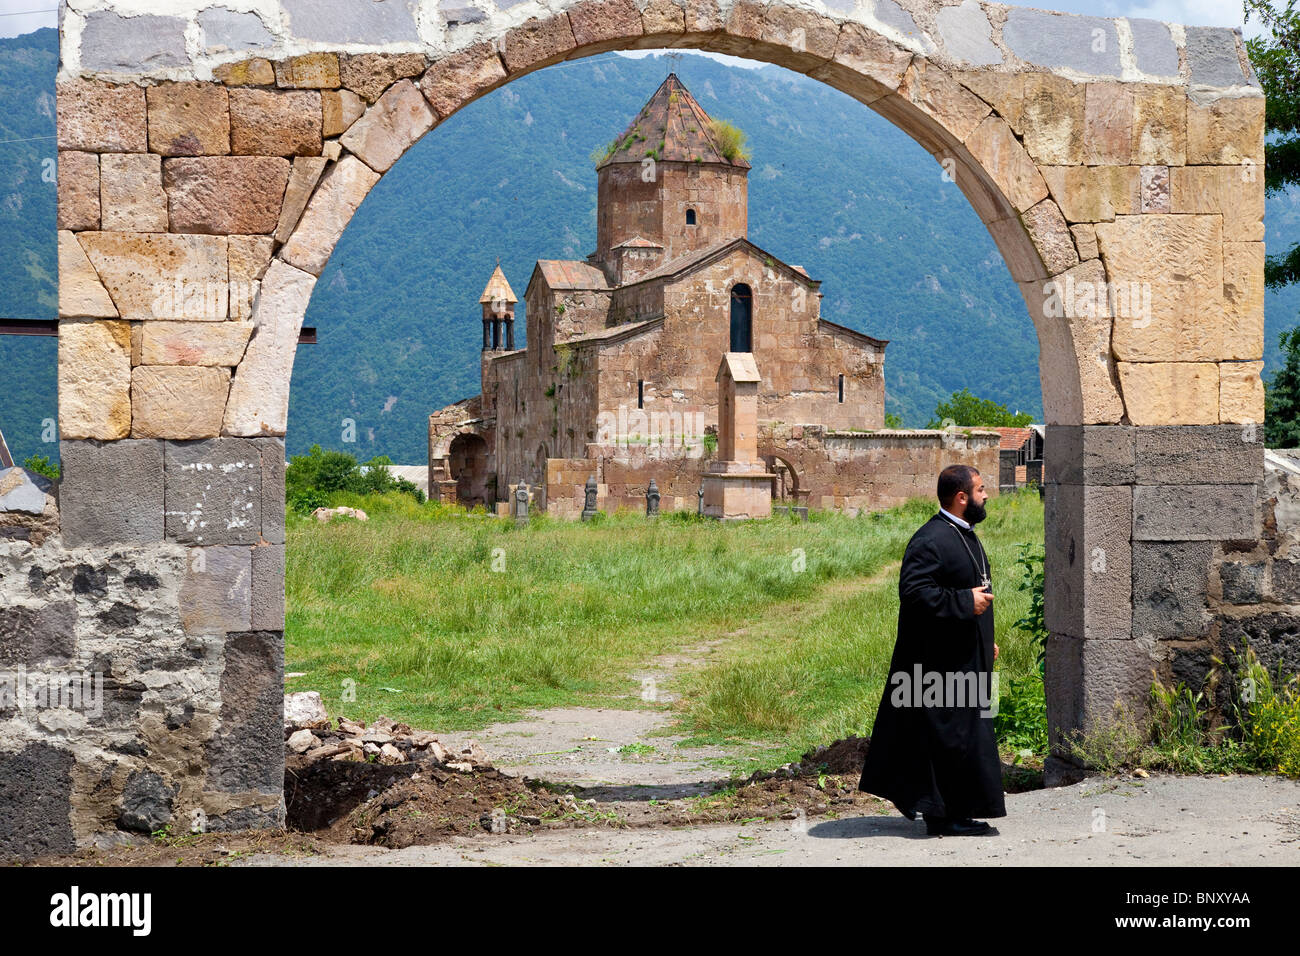 7th Century Odzun Church in Debed Canyon Armenia - Stock Image